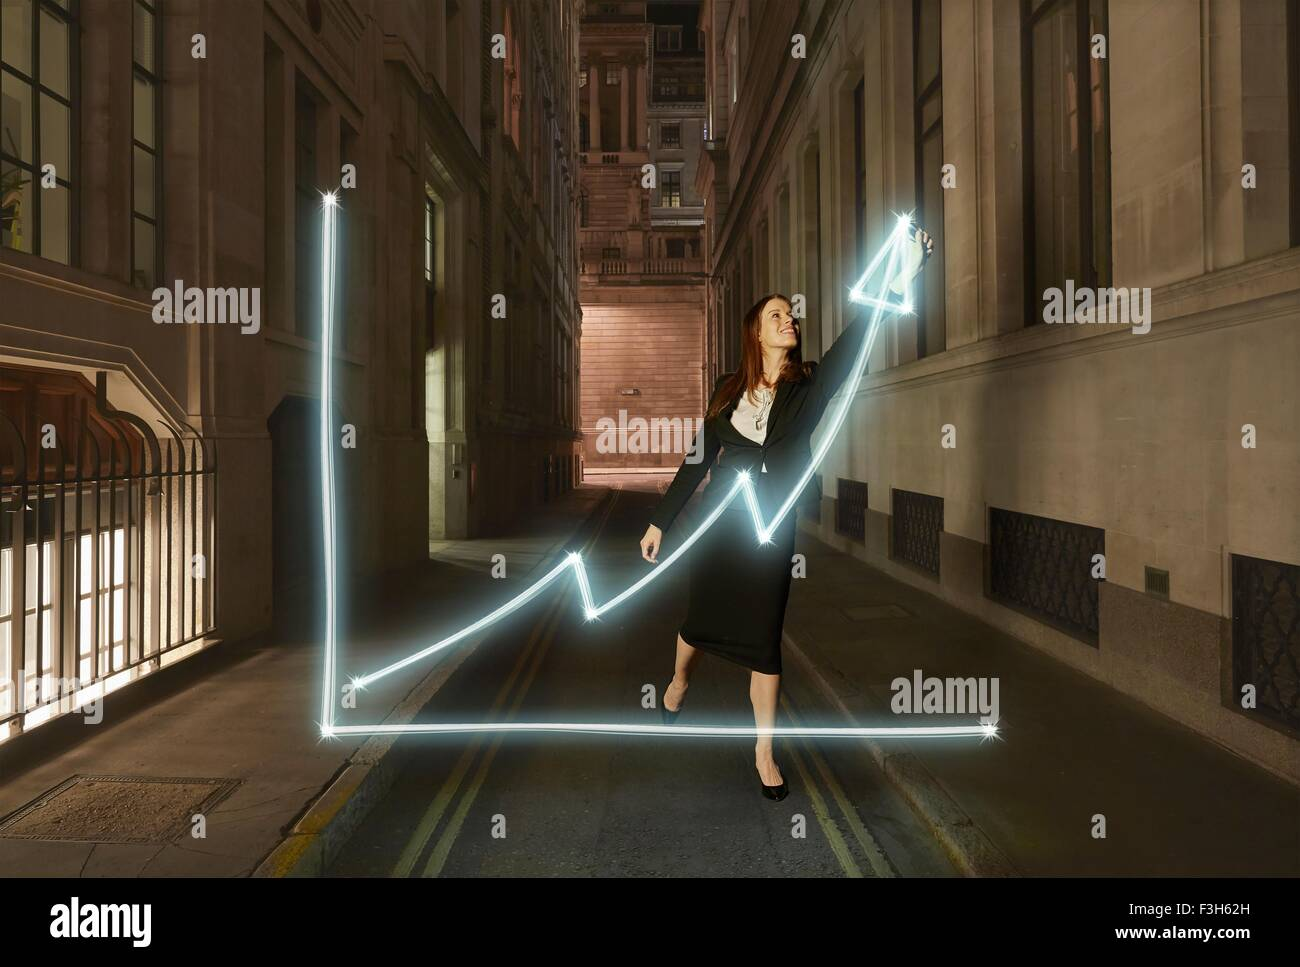 Businesswoman light painting tableau lumineux avec flèche vers le haut on city street at night Photo Stock